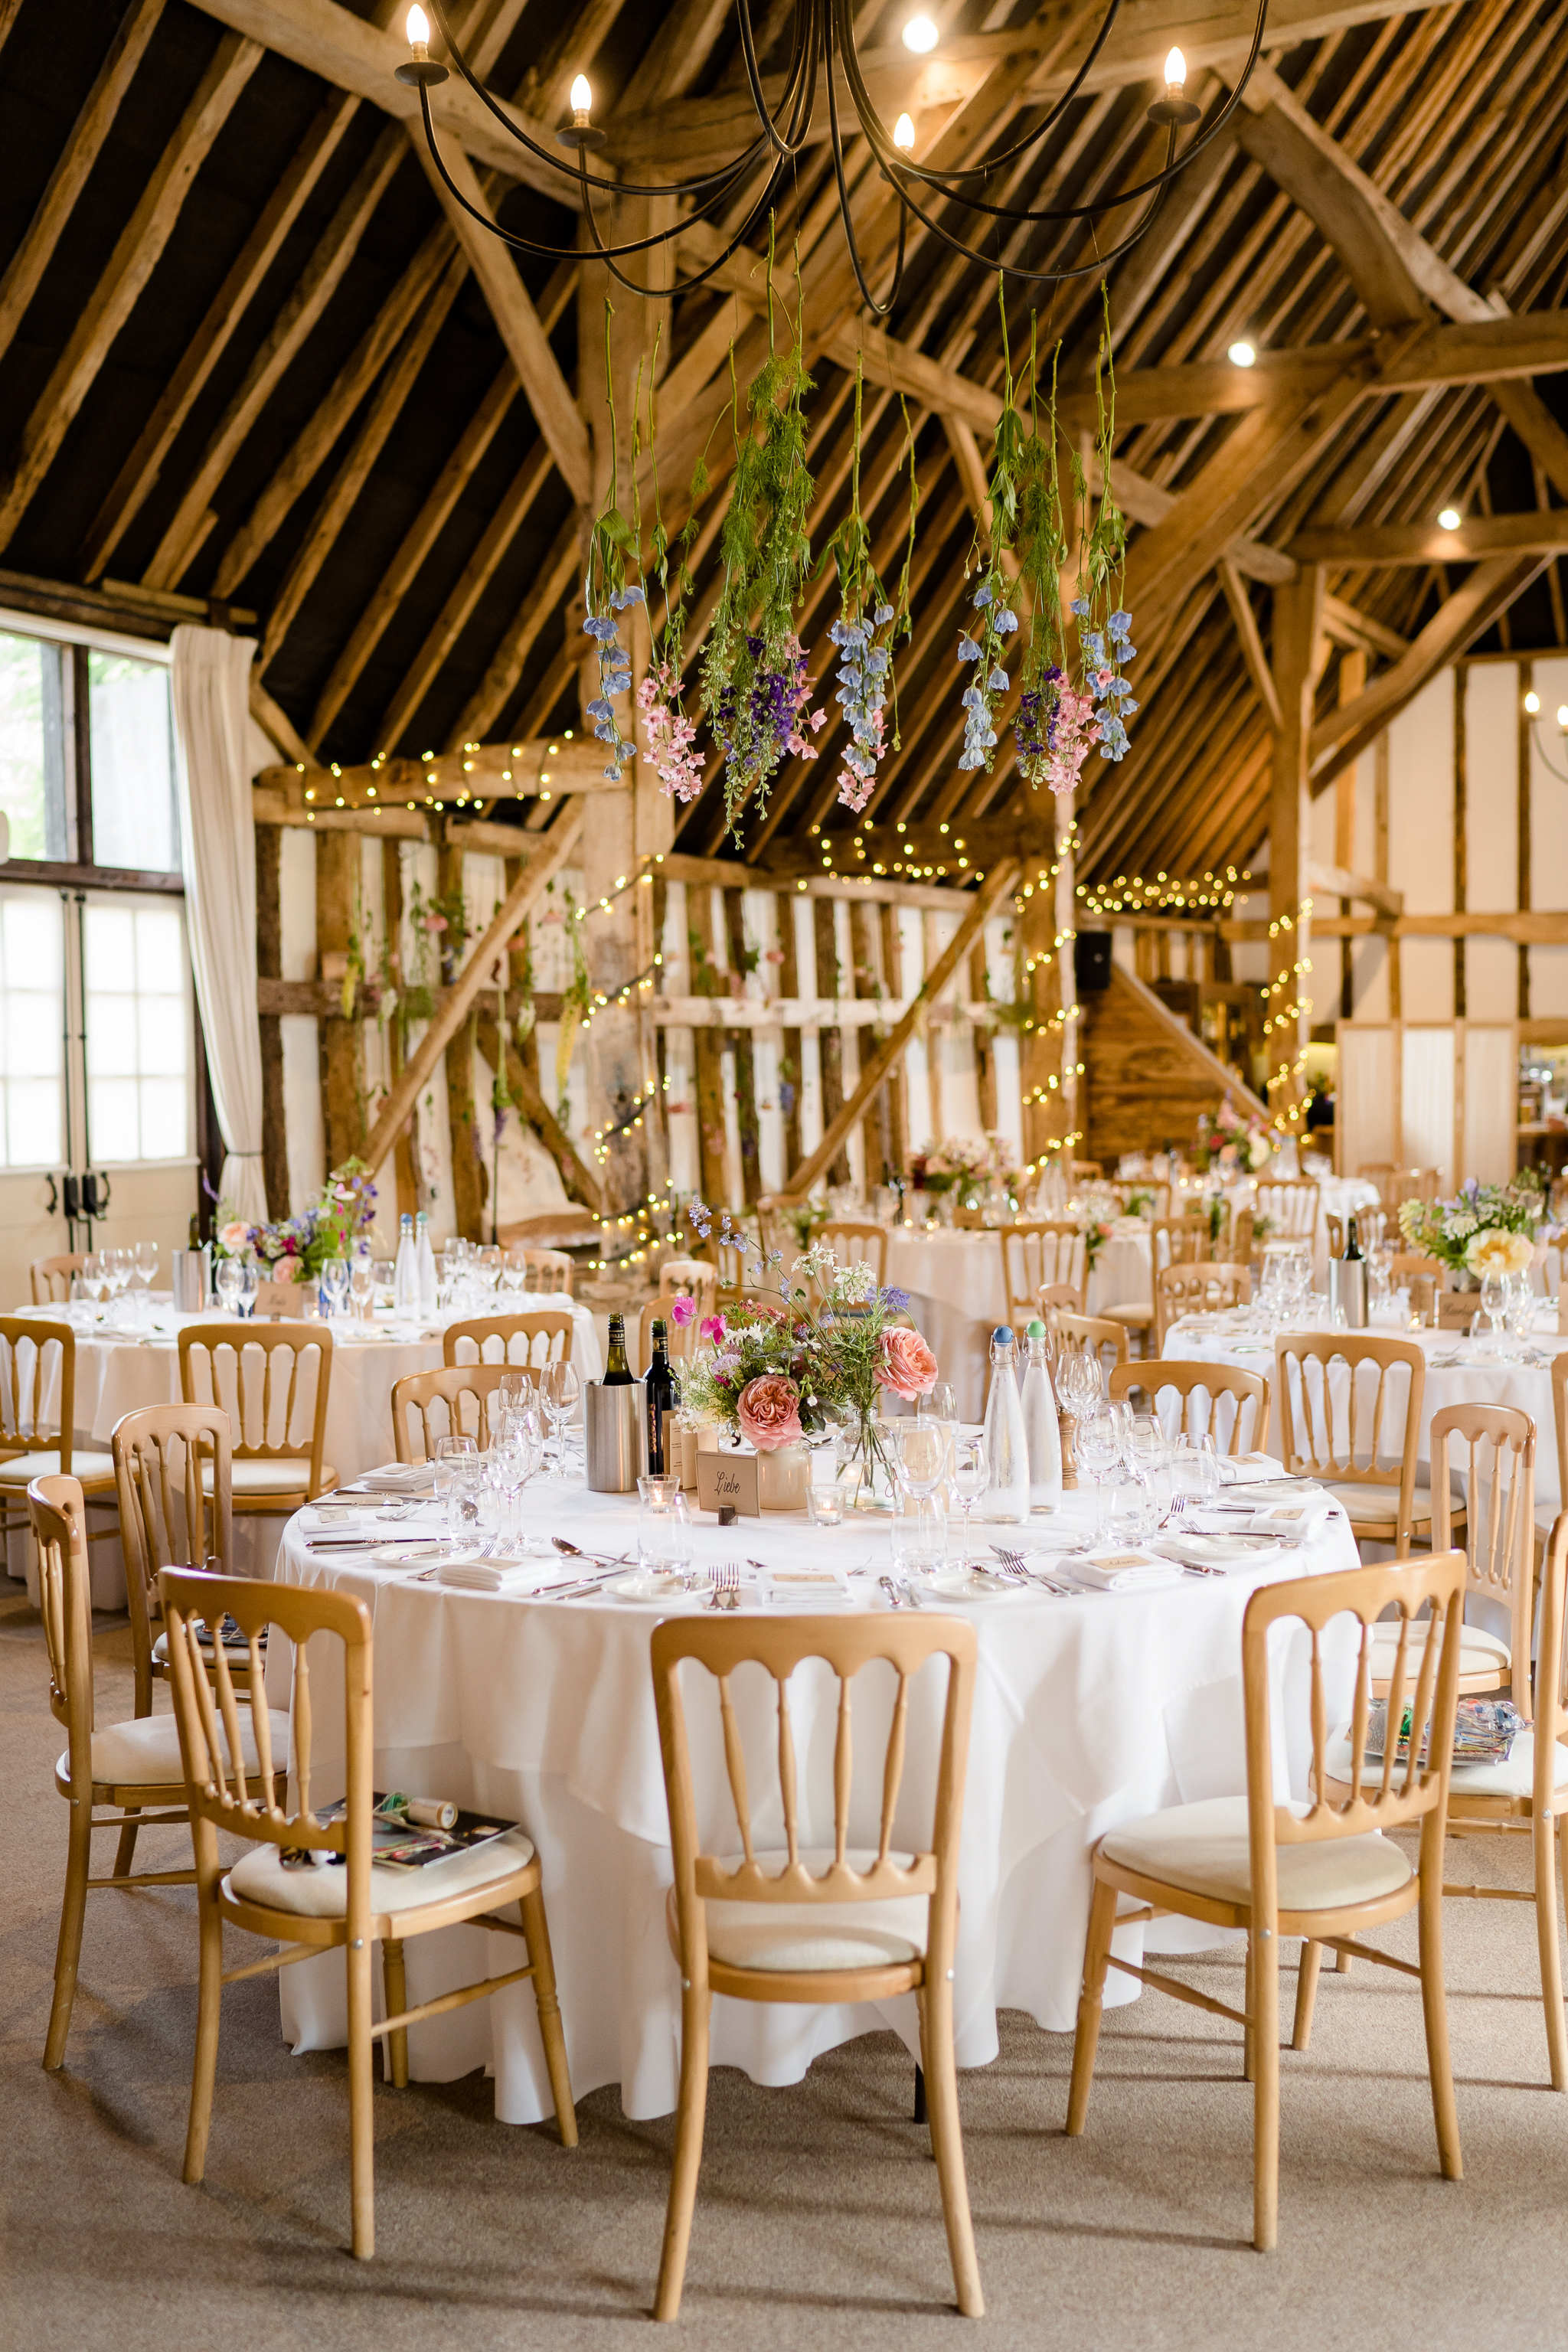 Clock Barn set up for a wedding breakfast with flowers hanging from the chandeliers by The White Horse Flower Company